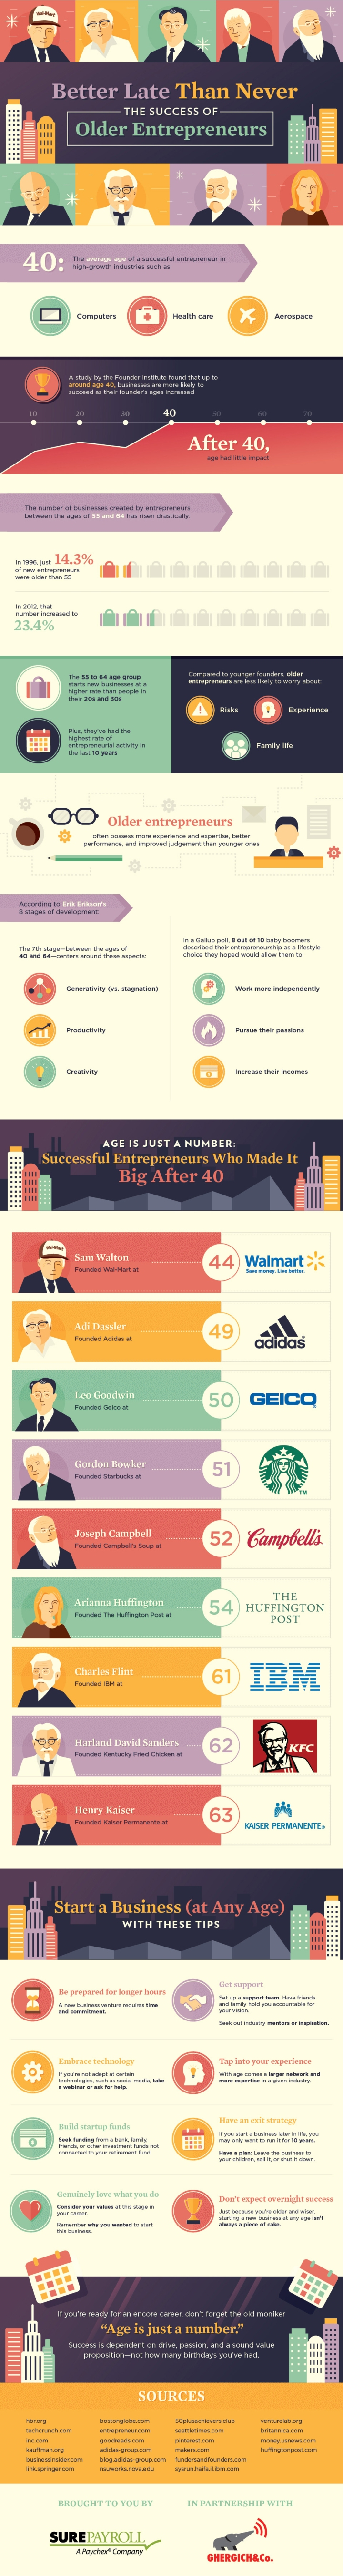 20151103081719-success-of-older-entrepreneurs-infographic